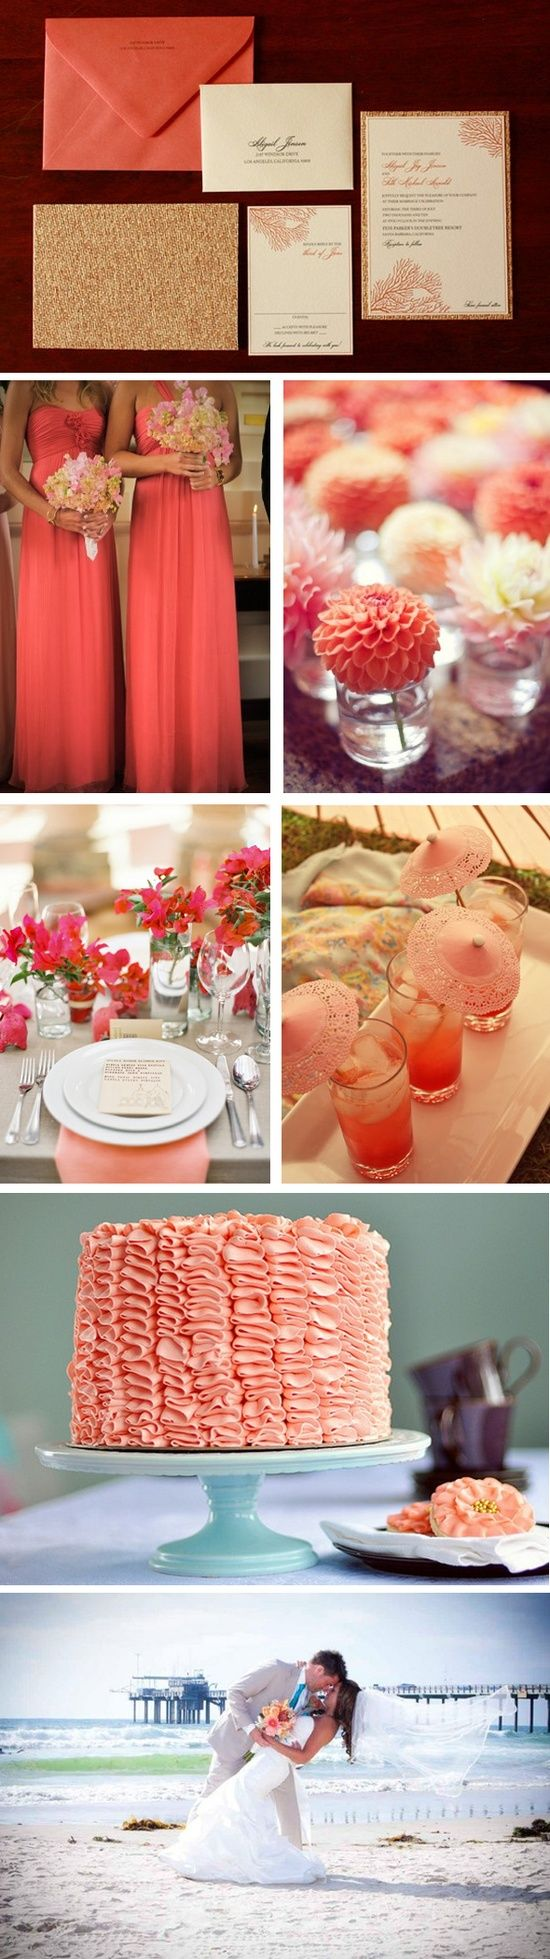 Coral and Gold Wedding. - I am not sure about the gold, but I LOVE the the idea of using the color coral!